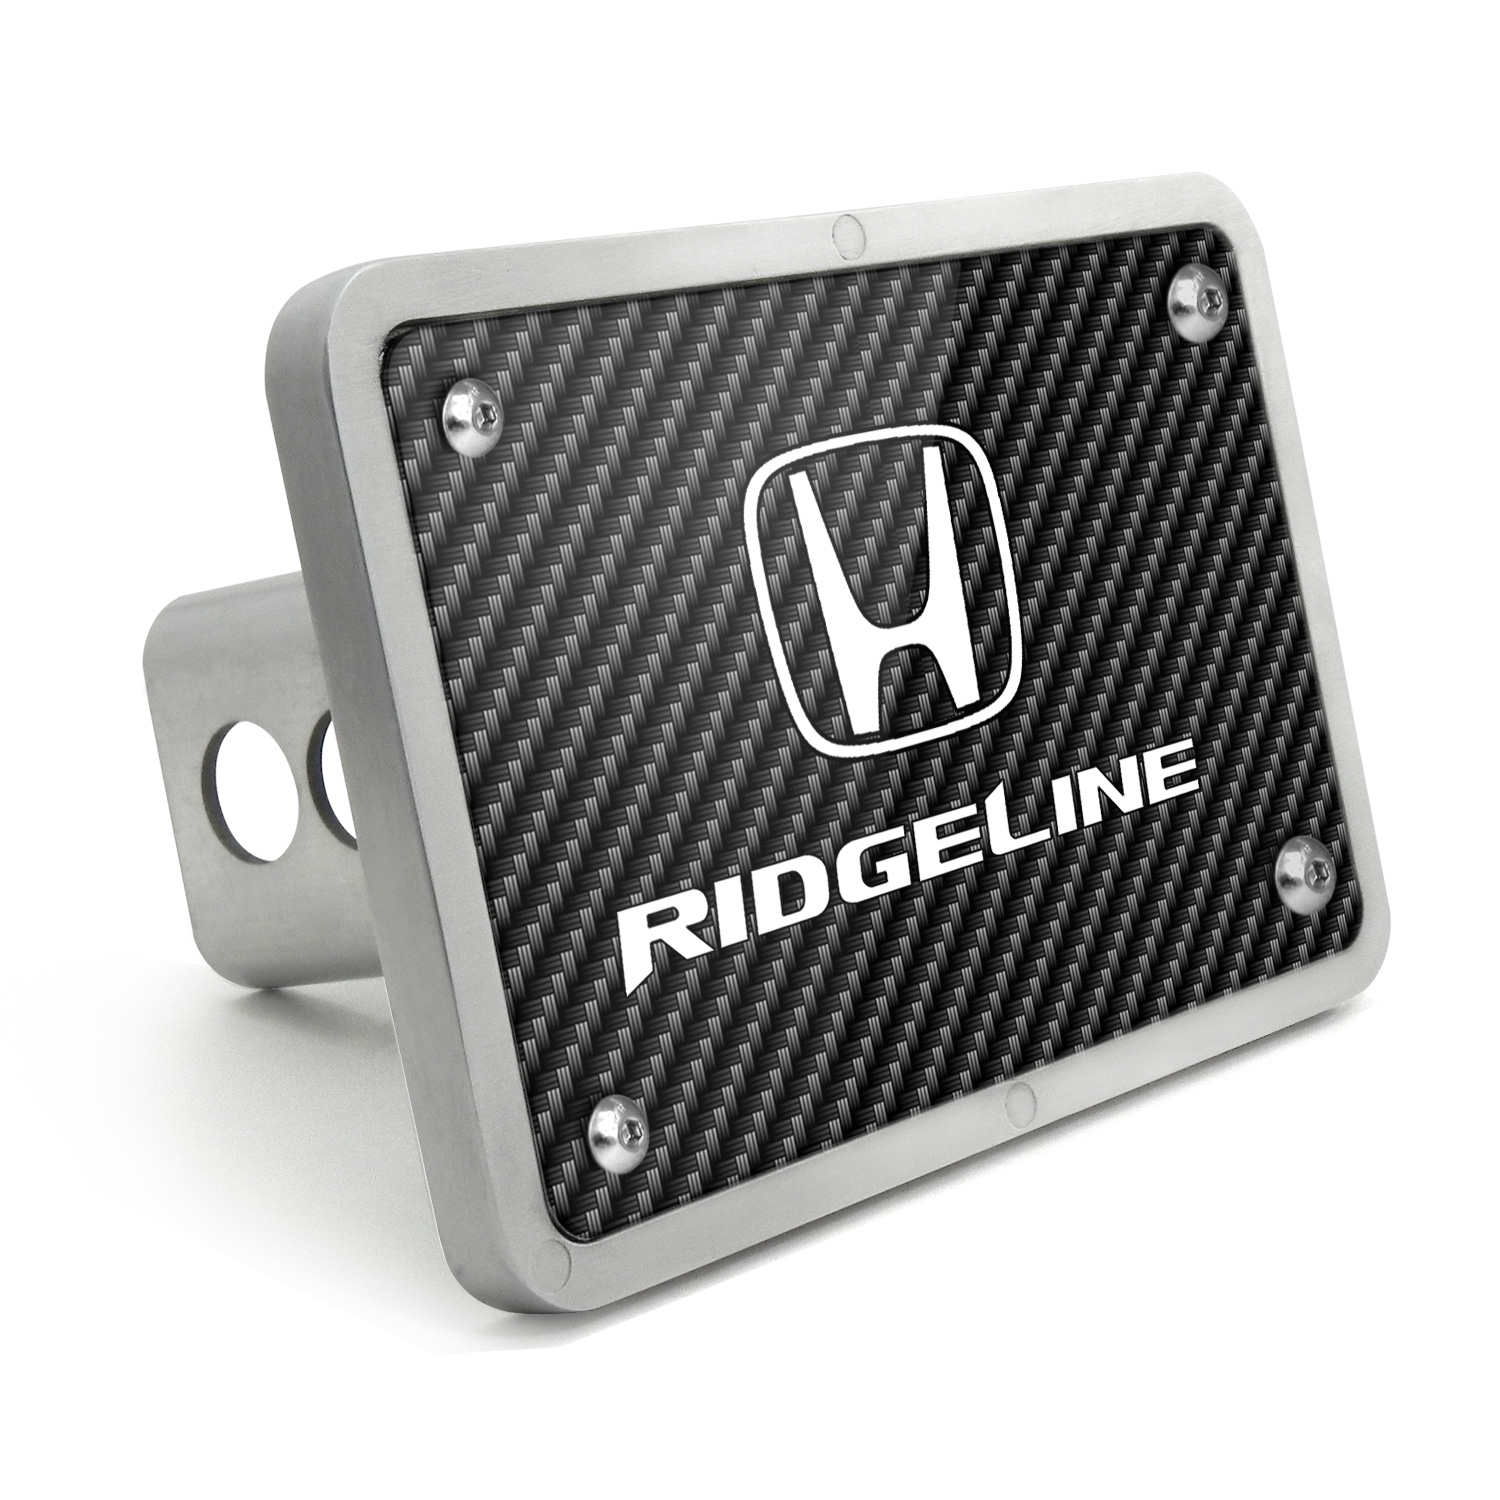 Honda Ridgeline UV Graphic Carbon Fiber Texture Billet Aluminum 2 inch Tow Hitch Cover